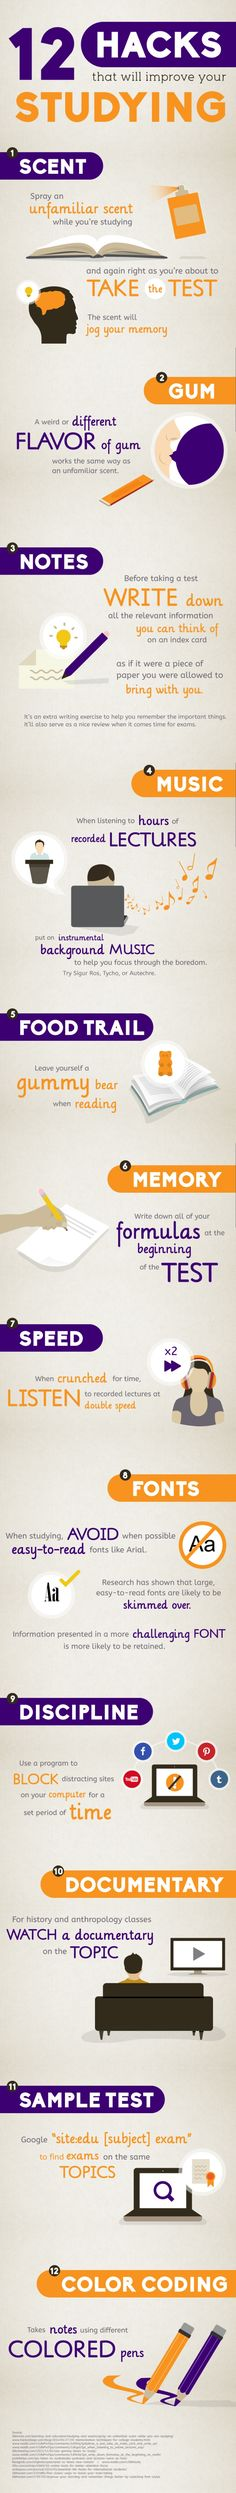 12 Hacks That Will Improve Your Studying - #College, #Study, #Studying